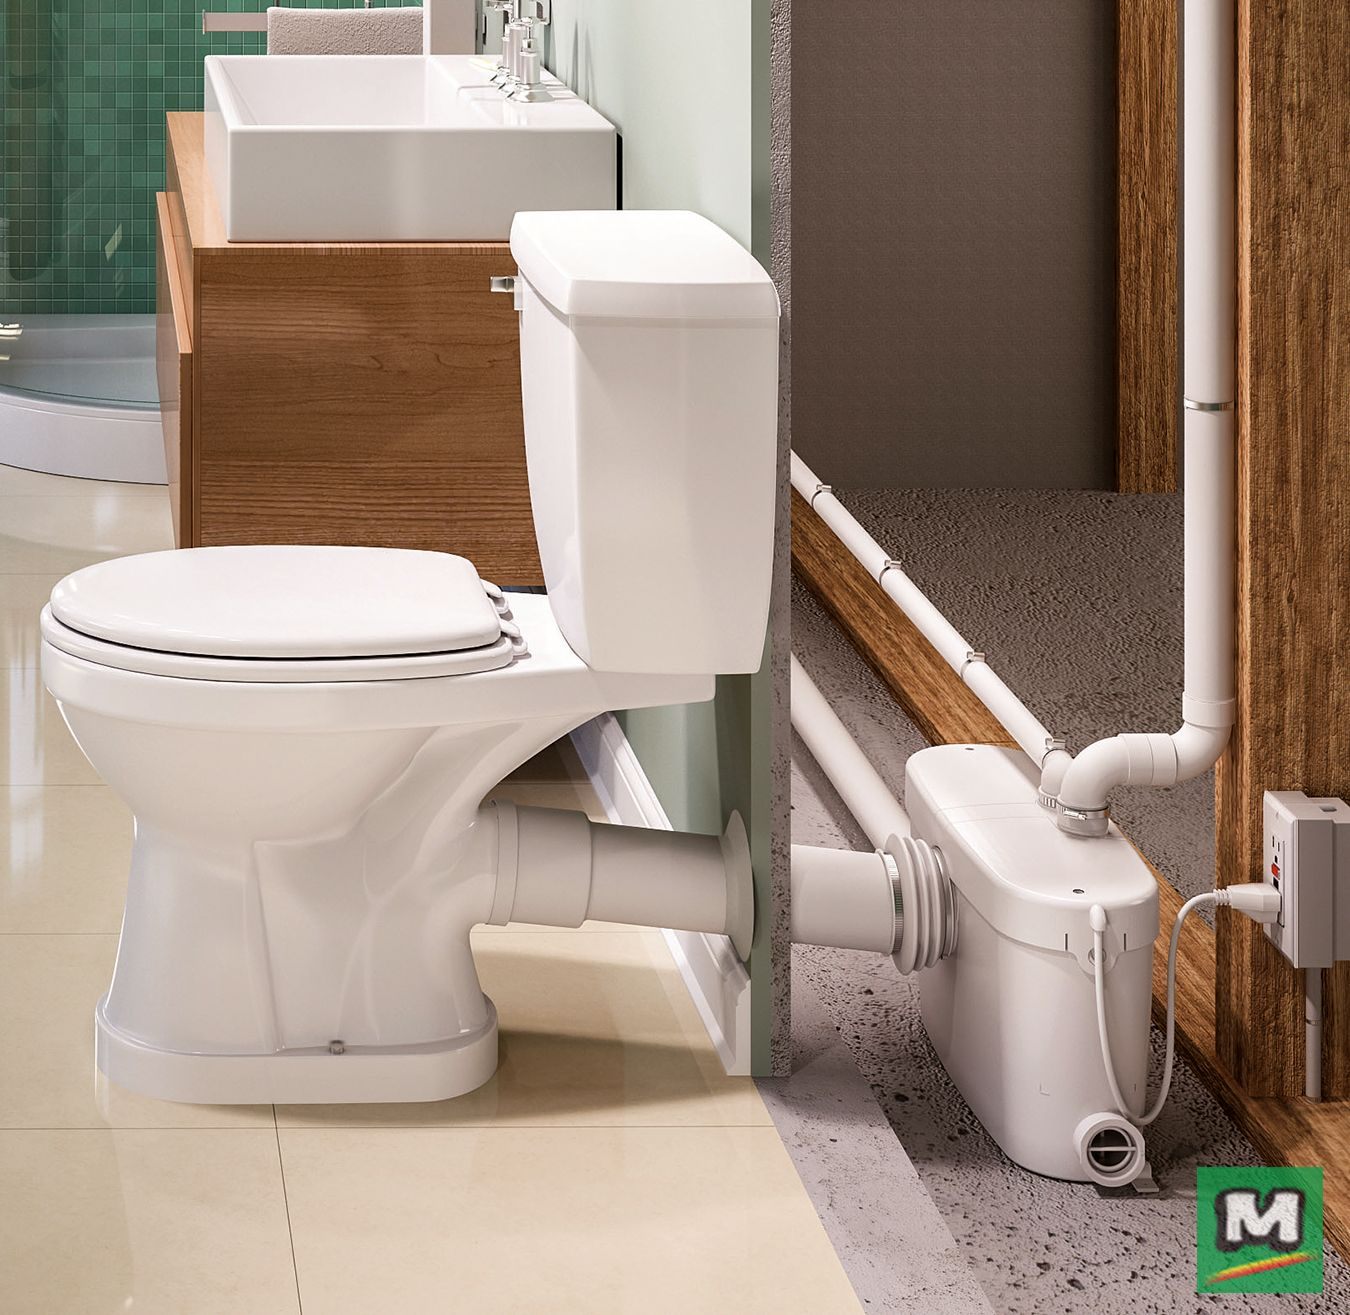 medium resolution of install a basement bathroom without the need to break concrete the sanipro macerating toilet system is a breeze to install virtually anywhere with a power